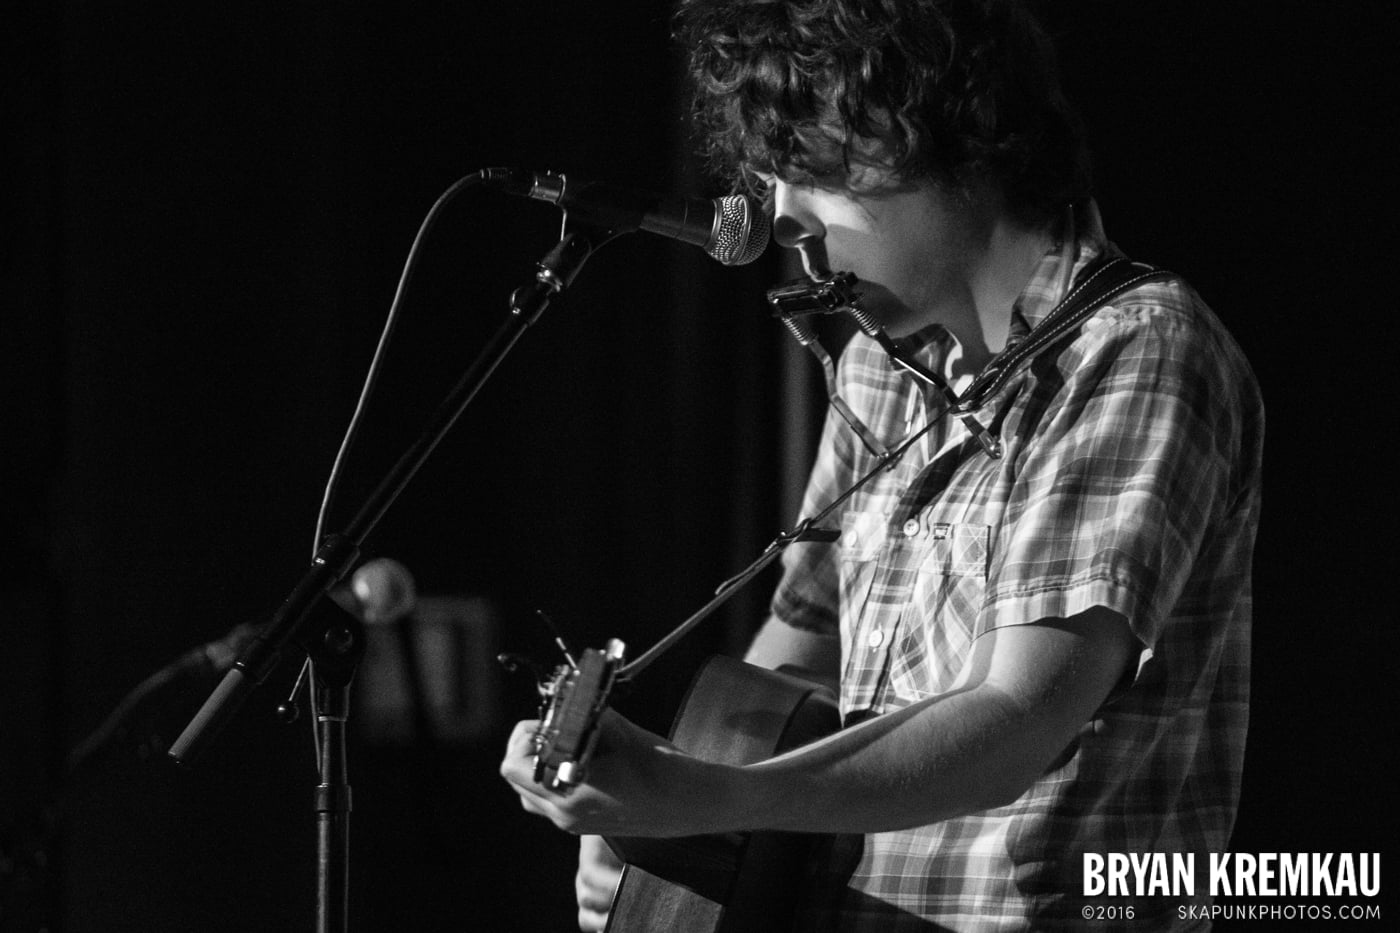 Trapper Schoepp @ City Winery, NYC - 6.26.13 (8)